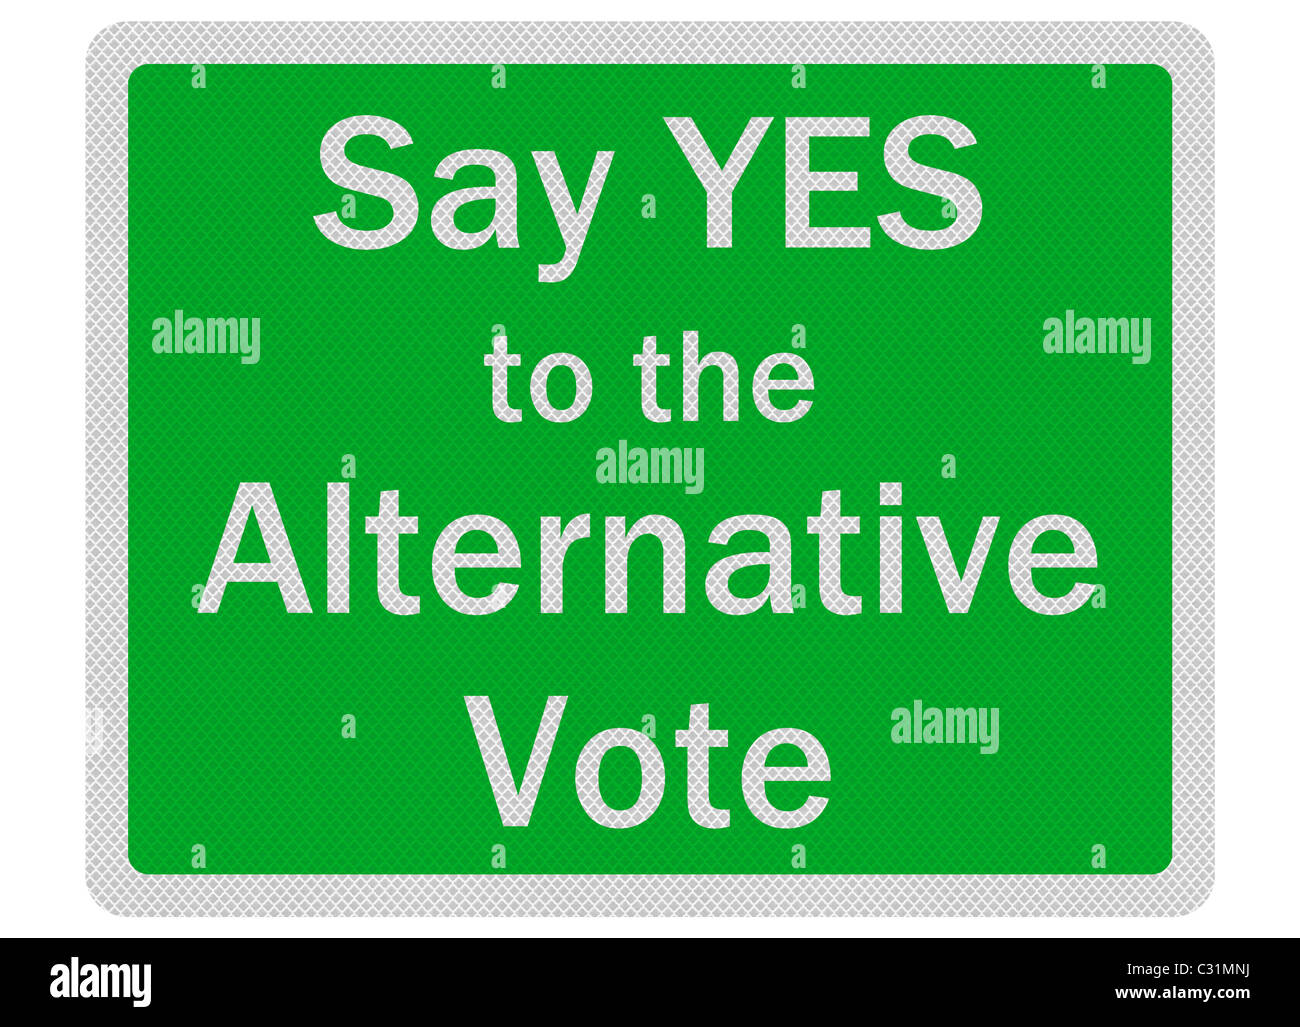 Photo realistic metallic, reflective 'say yes to alternative vote' sign, isolated on white - Stock Image